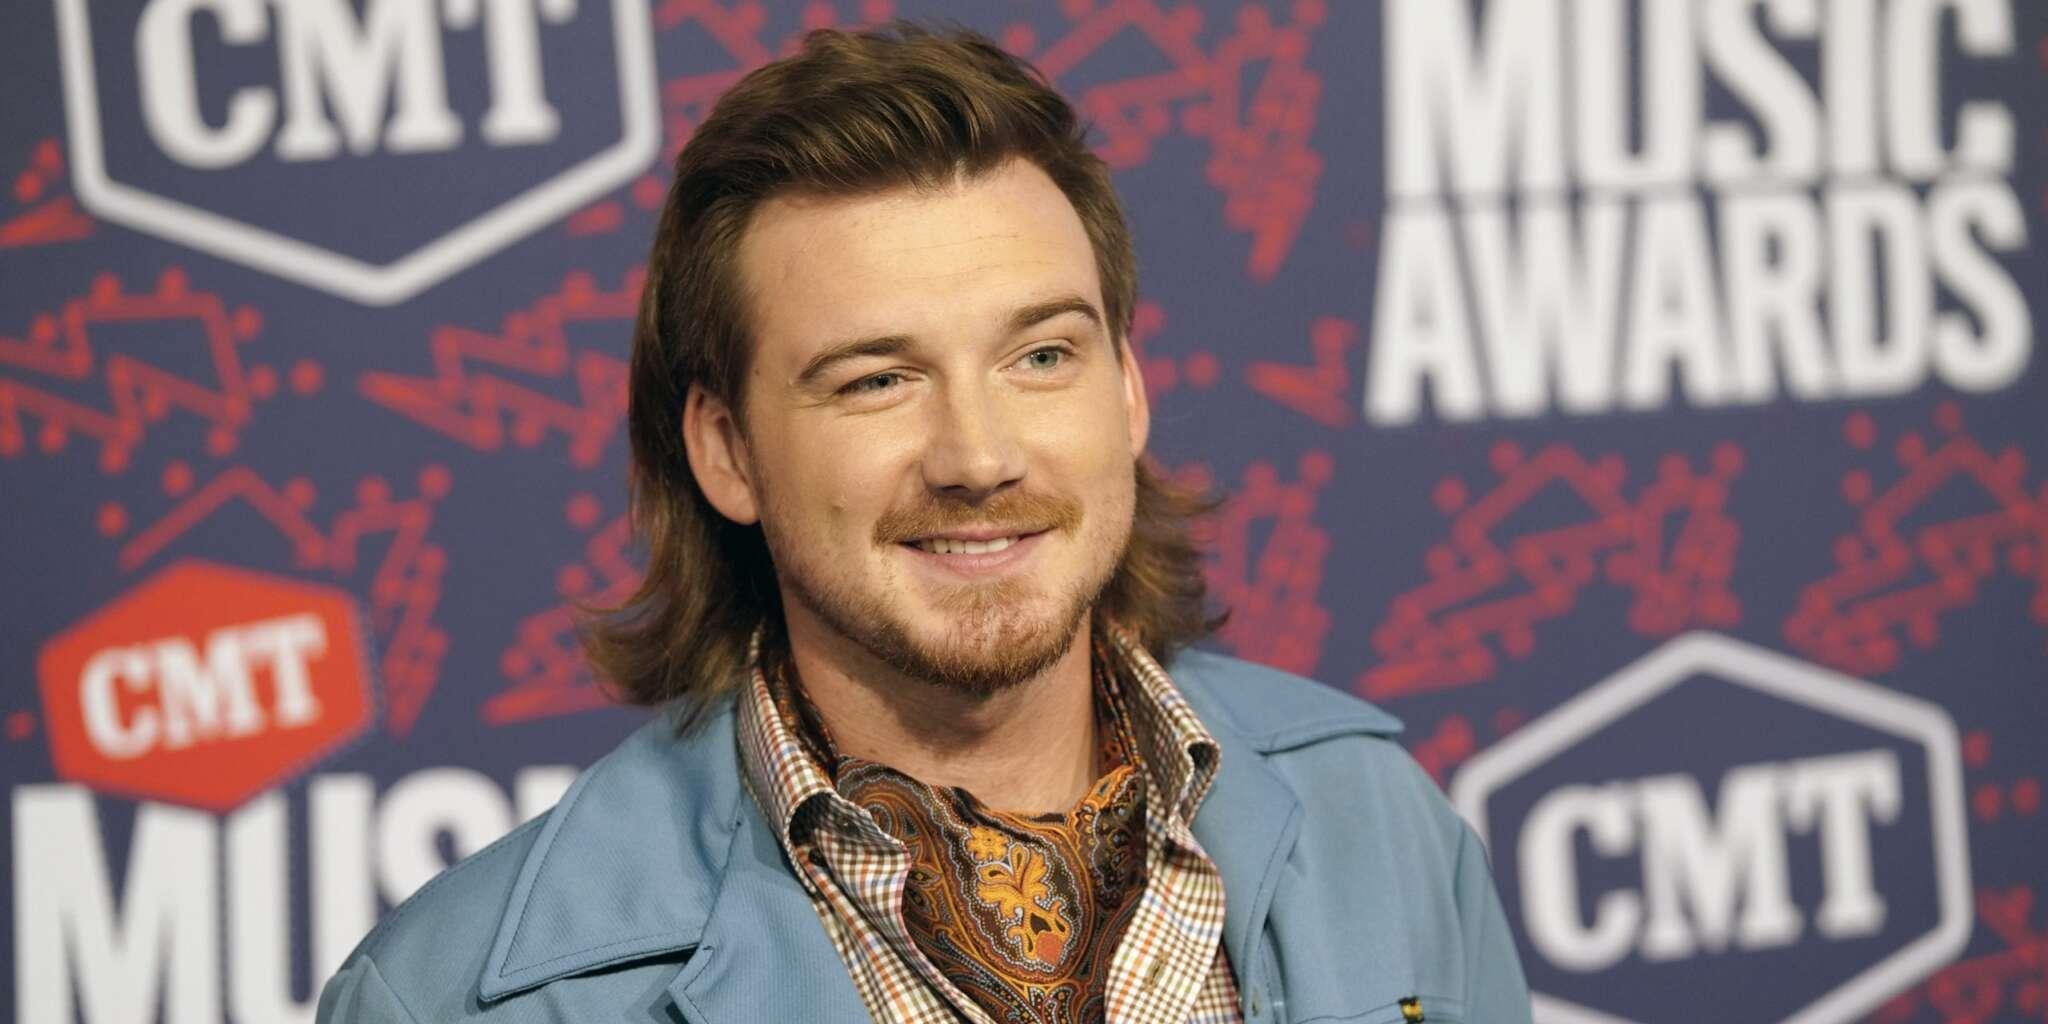 Morgan Wallen Caught Saying The N-Word On Video -- Peers Say This Isn't His First Time Using The Word As He Is Pulled From Radio